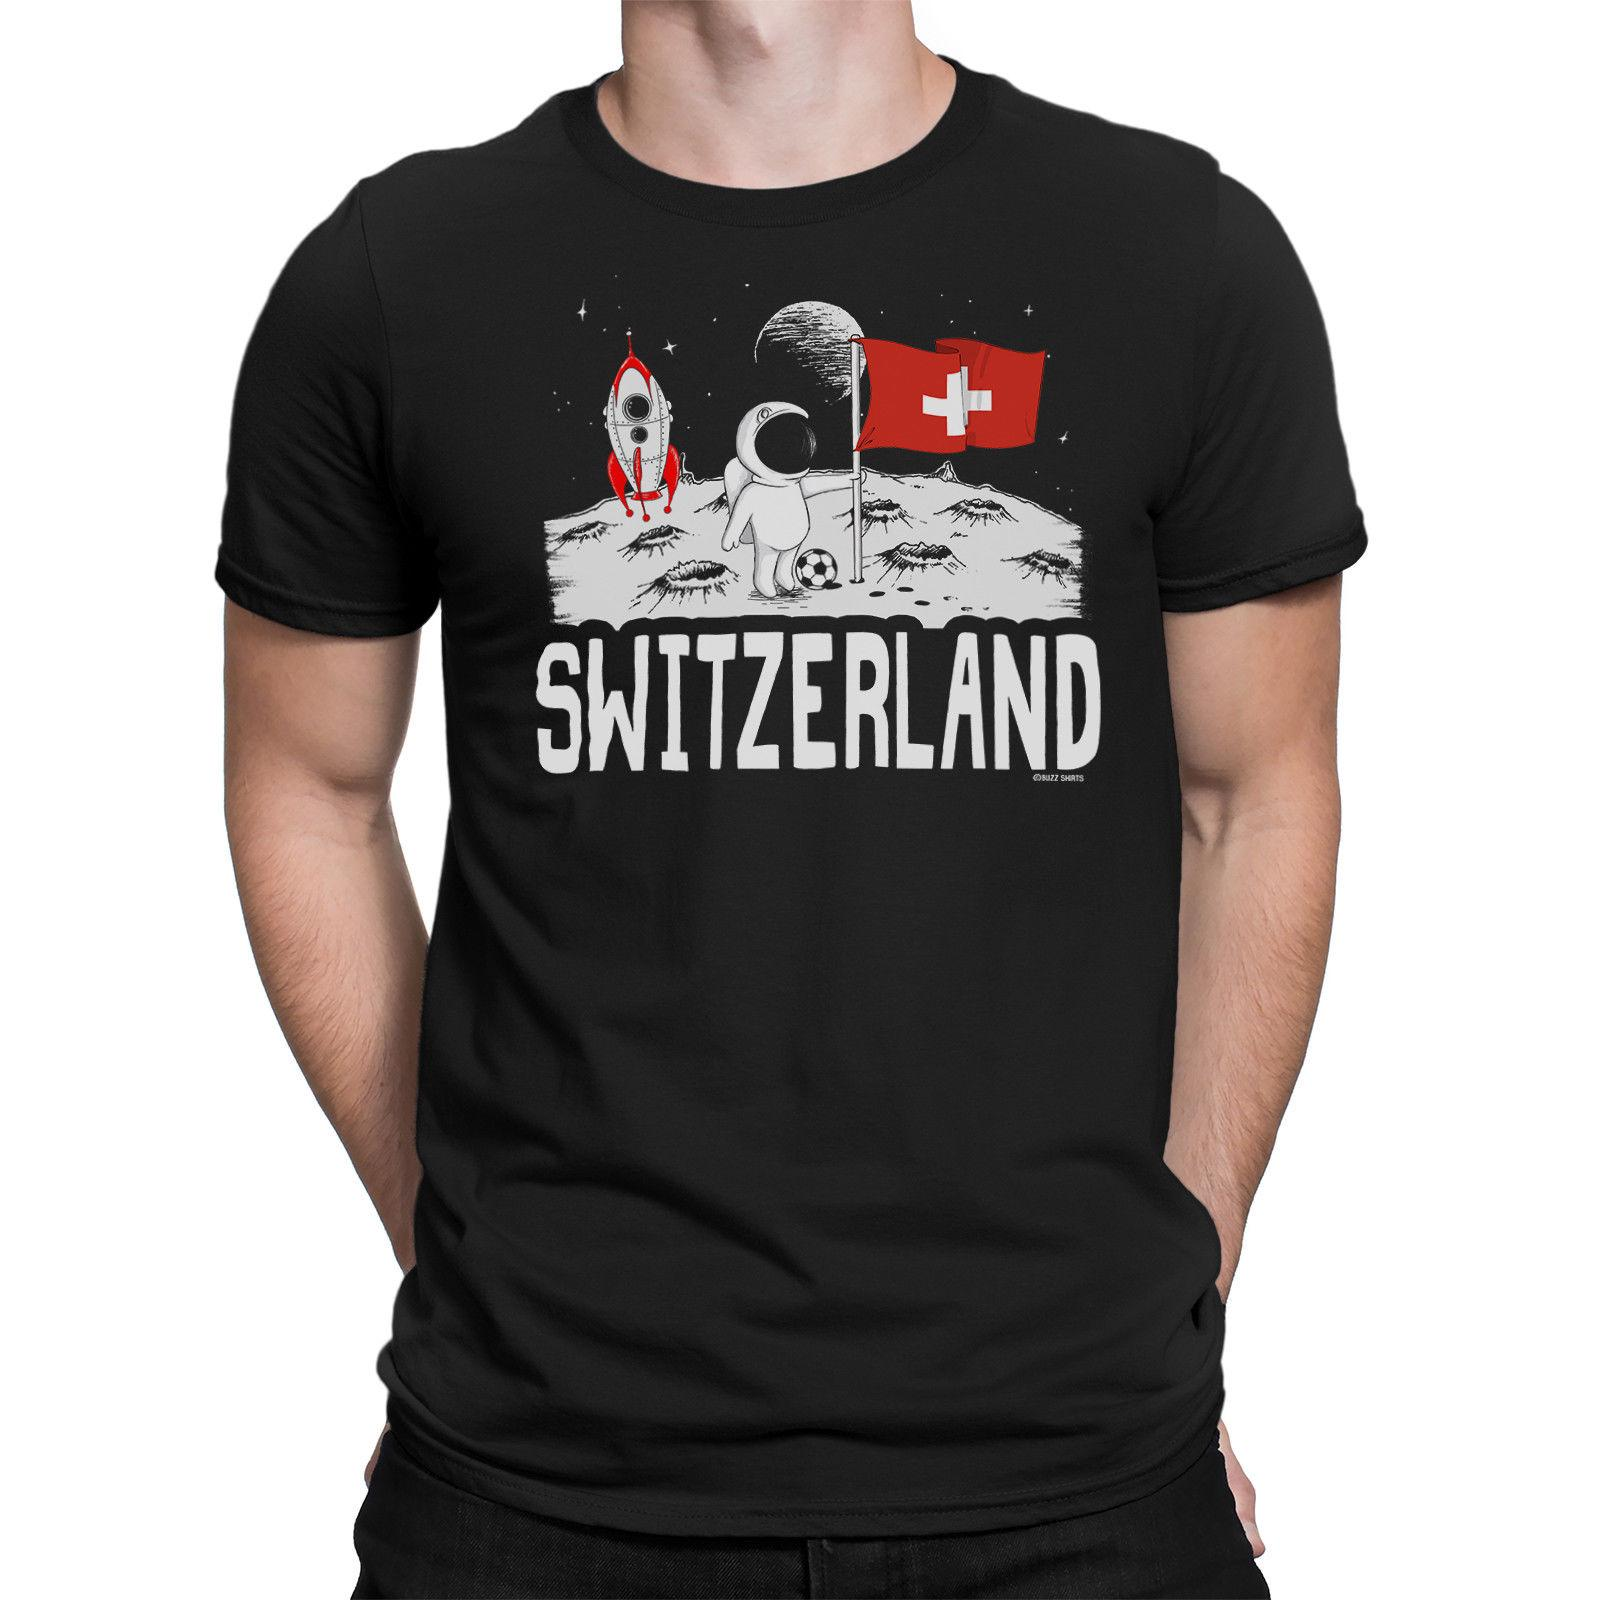 717acfe1 Mens SWITZERLAND T Shirt MOON Flag World Cup 2018 Football Funny Patriotic  Gift Mens Funny T Shirts Buy Shirts From Dhgategiff, $11.01| DHgate.Com